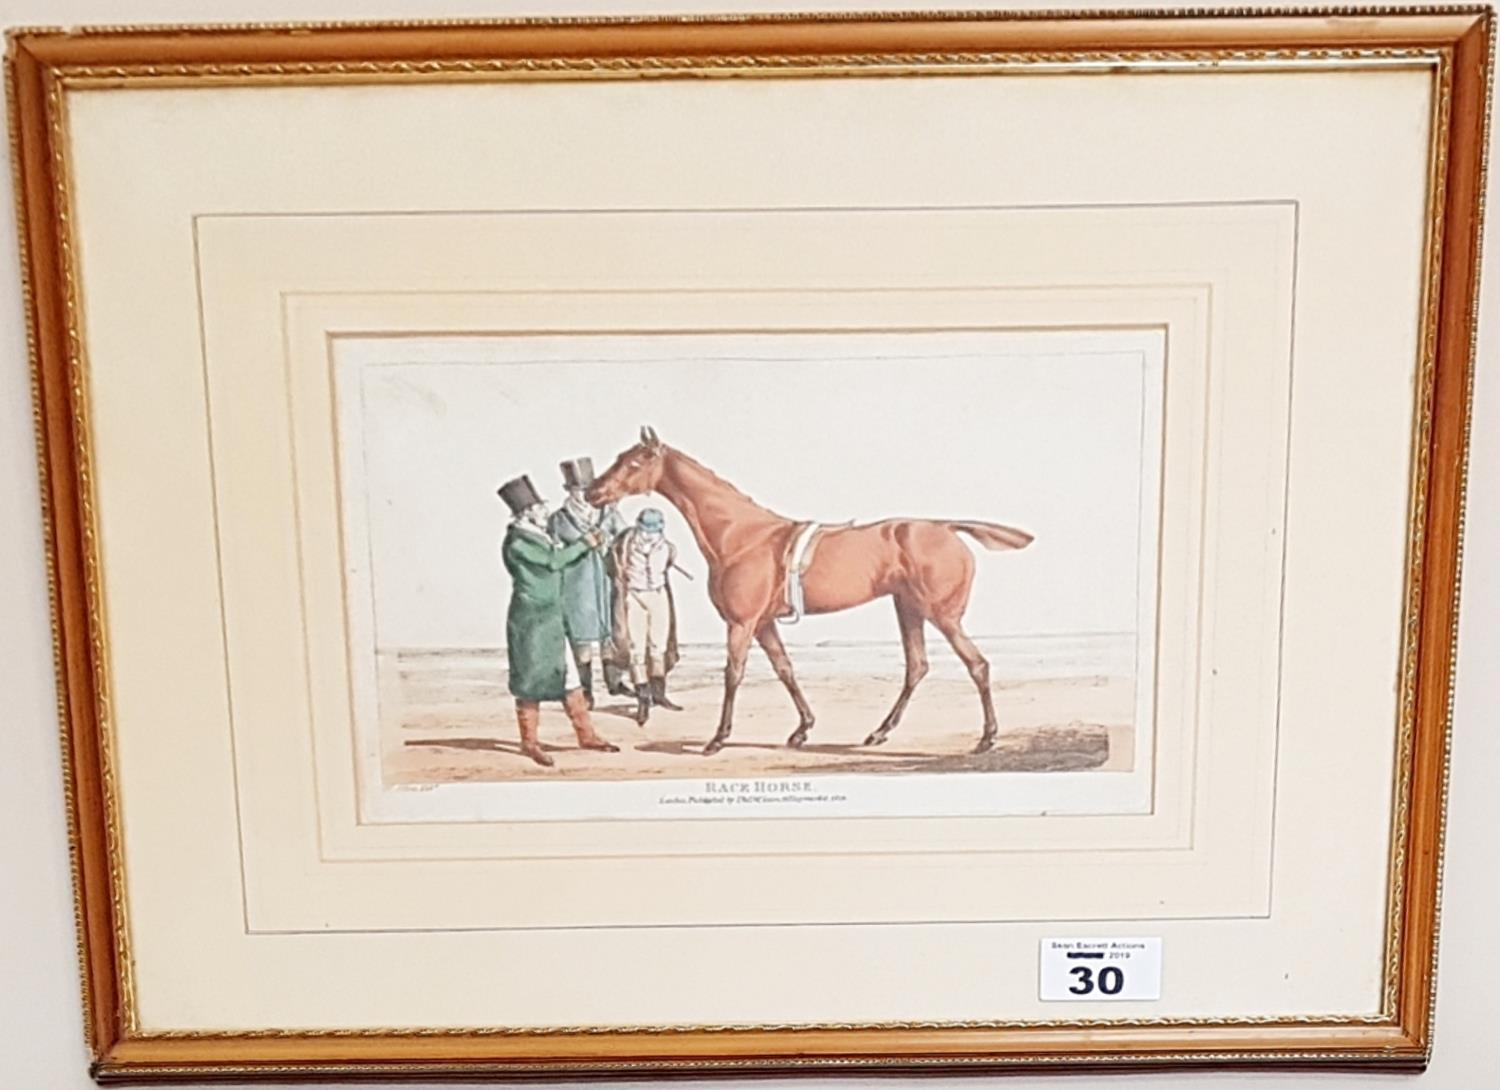 Lot 30 - A 19th Century Coloured Print 'Black Horse'.